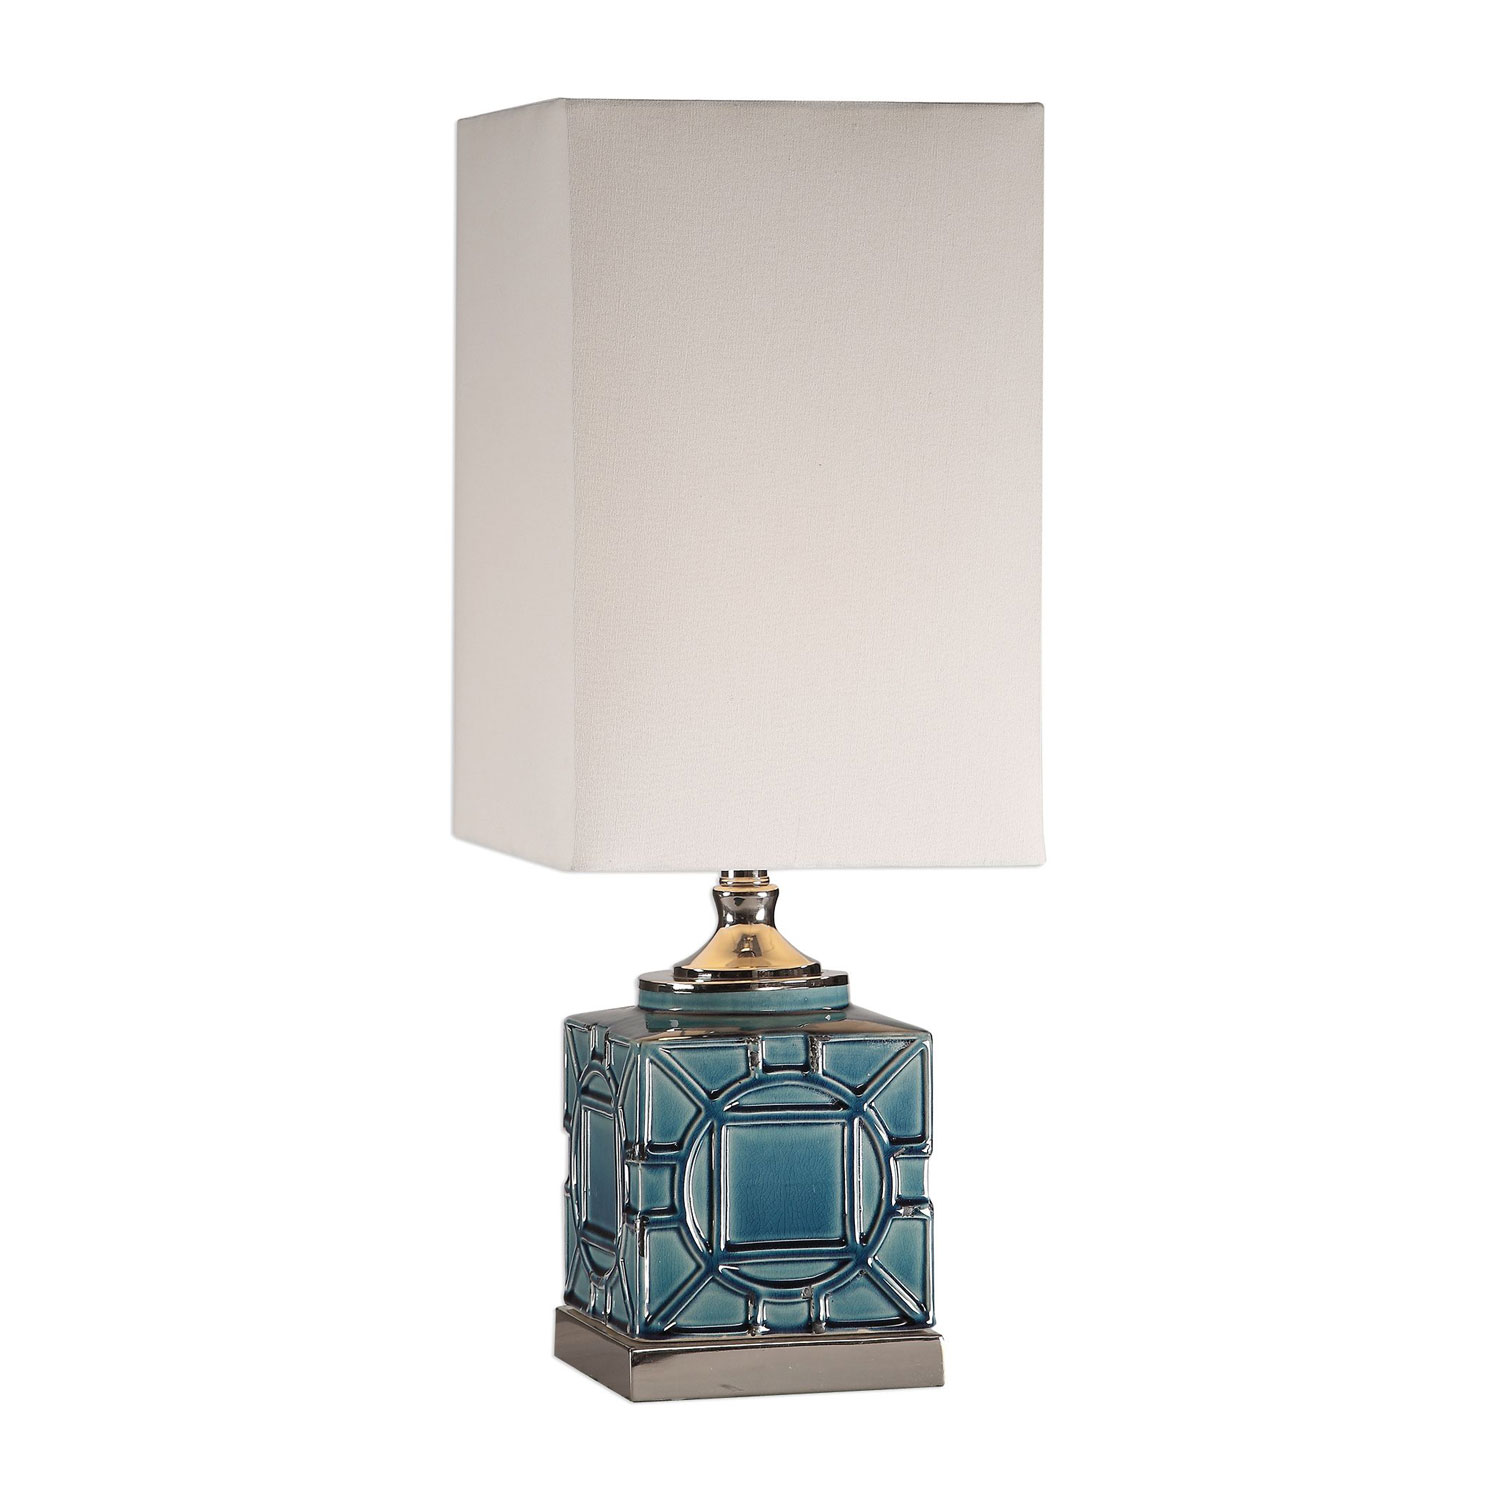 Uttermost Pacorro Lamp - Crackled Blue